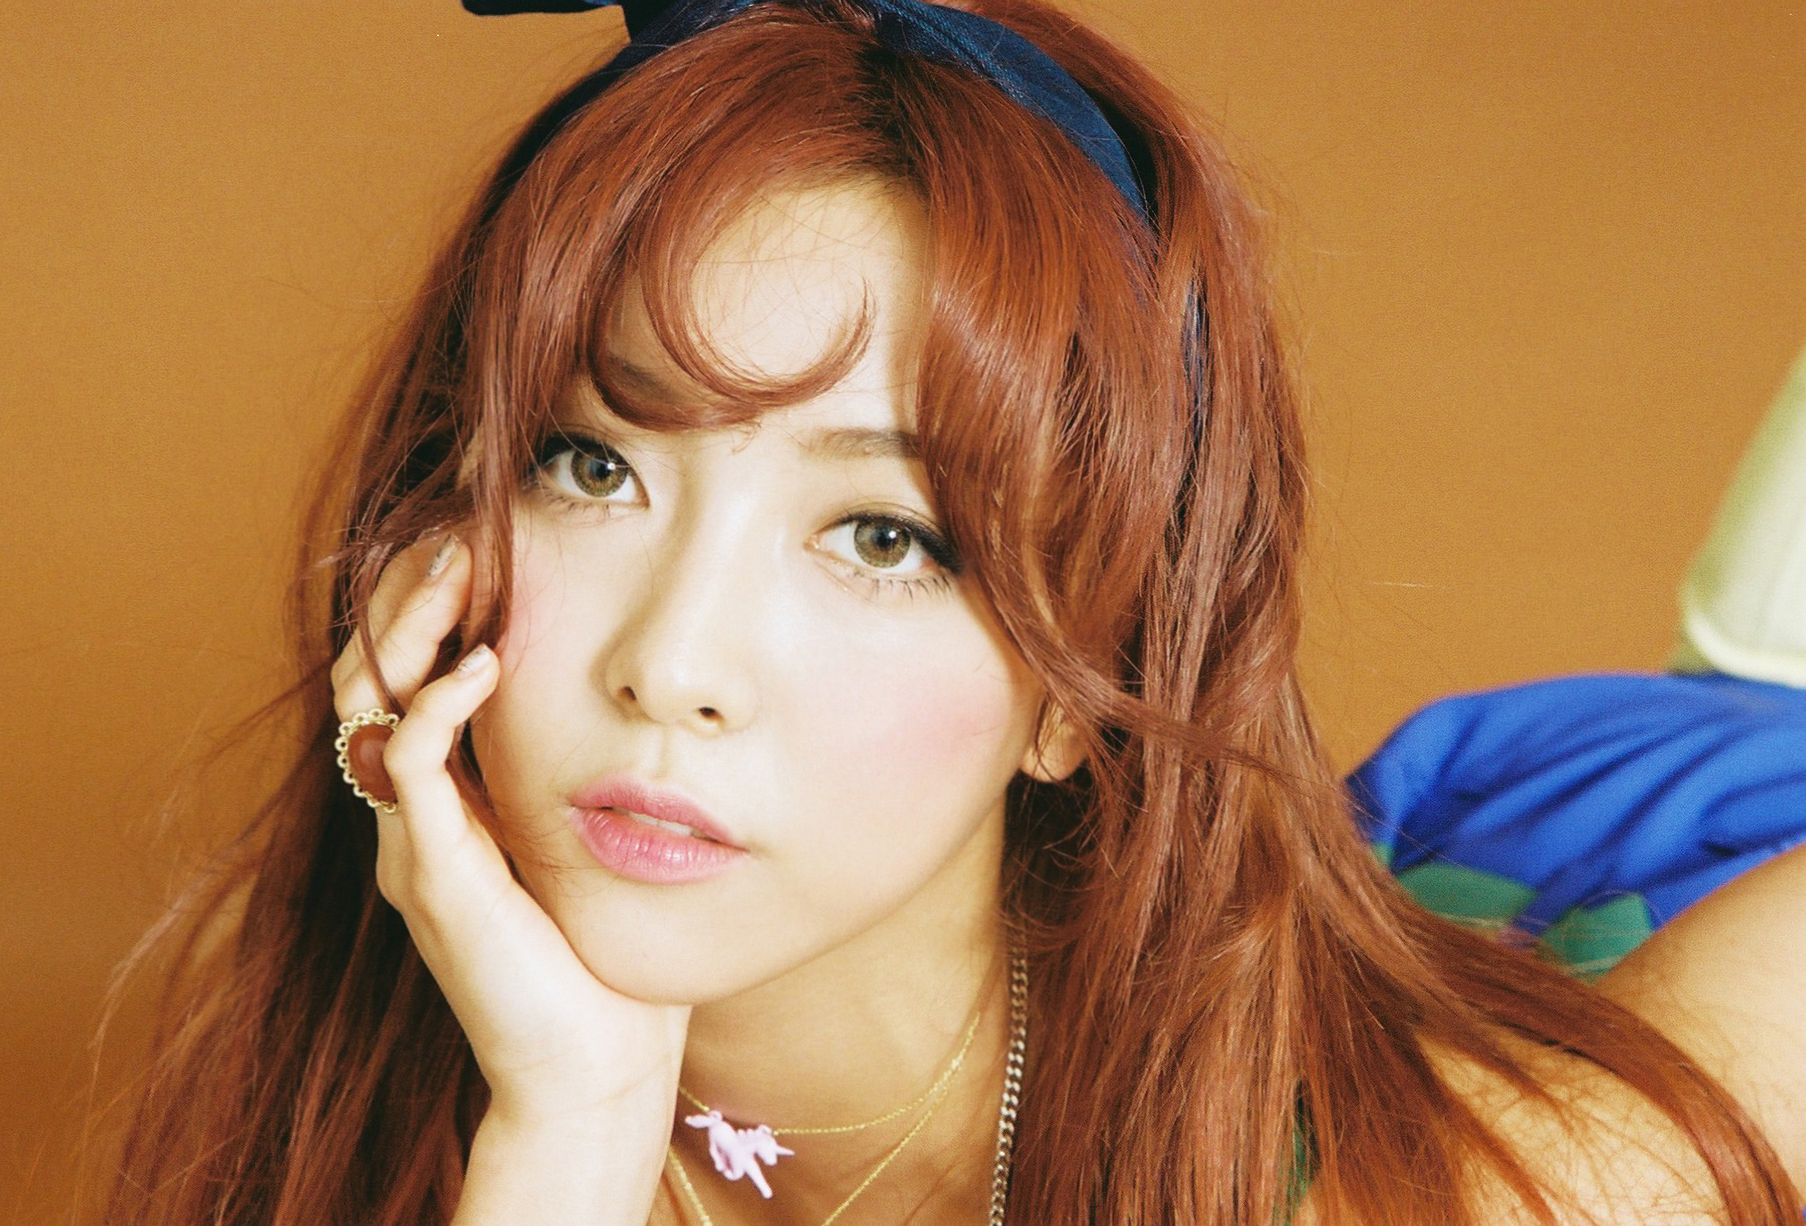 Luna Shares Her Thoughts About f(x)'s First Solo Concert